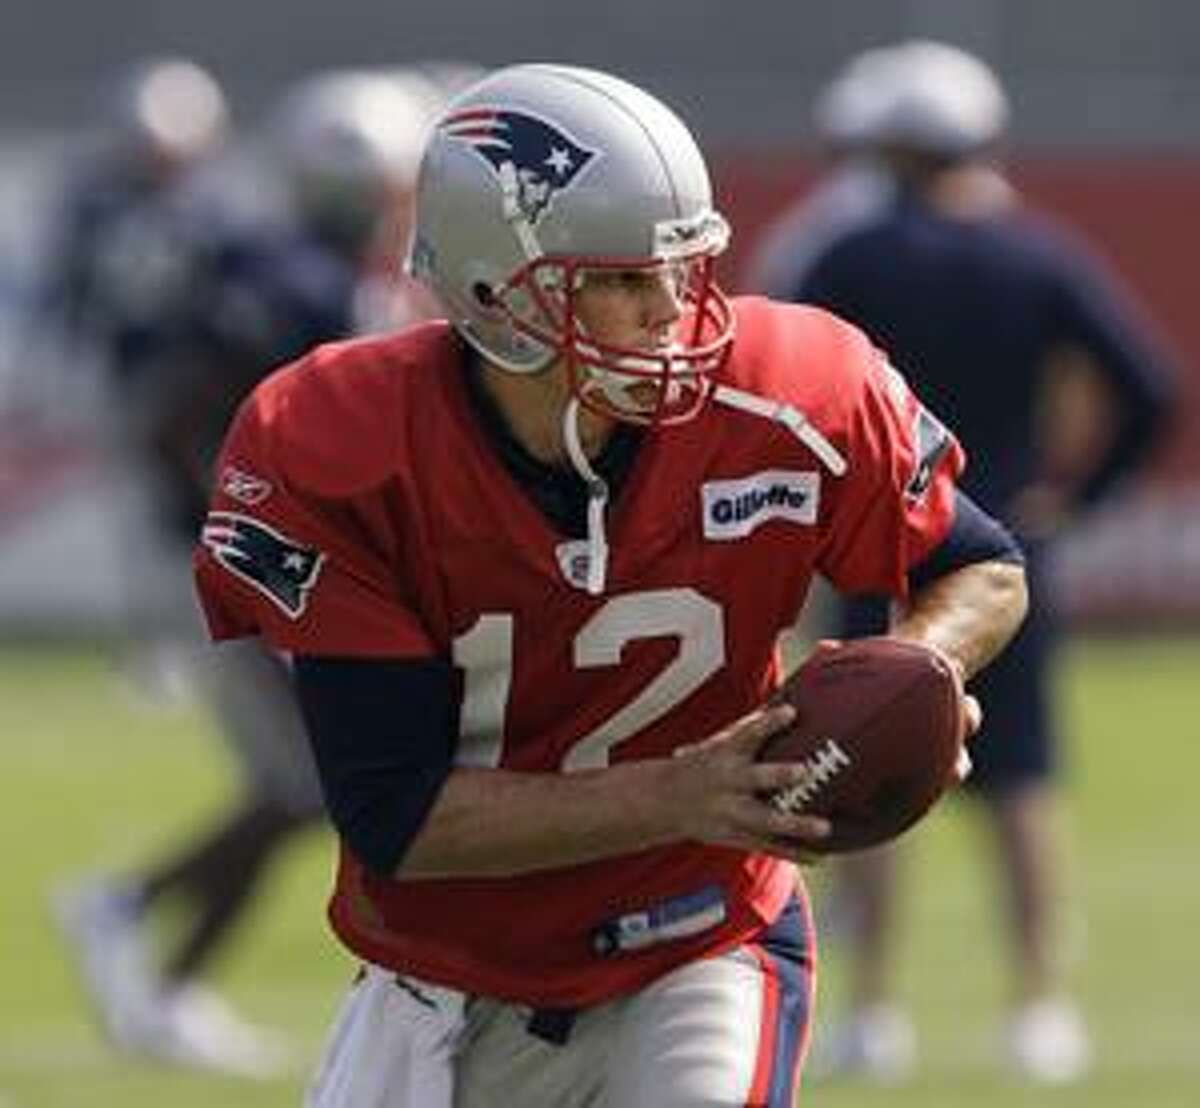 New England Patriots quarterback Tom Brady sets up to hand off the ball during the morning practice session of NFL football training camp in Foxborough, Mass., Monday, Aug. 17, 2009. (AP Photo/Stephan Savoia)